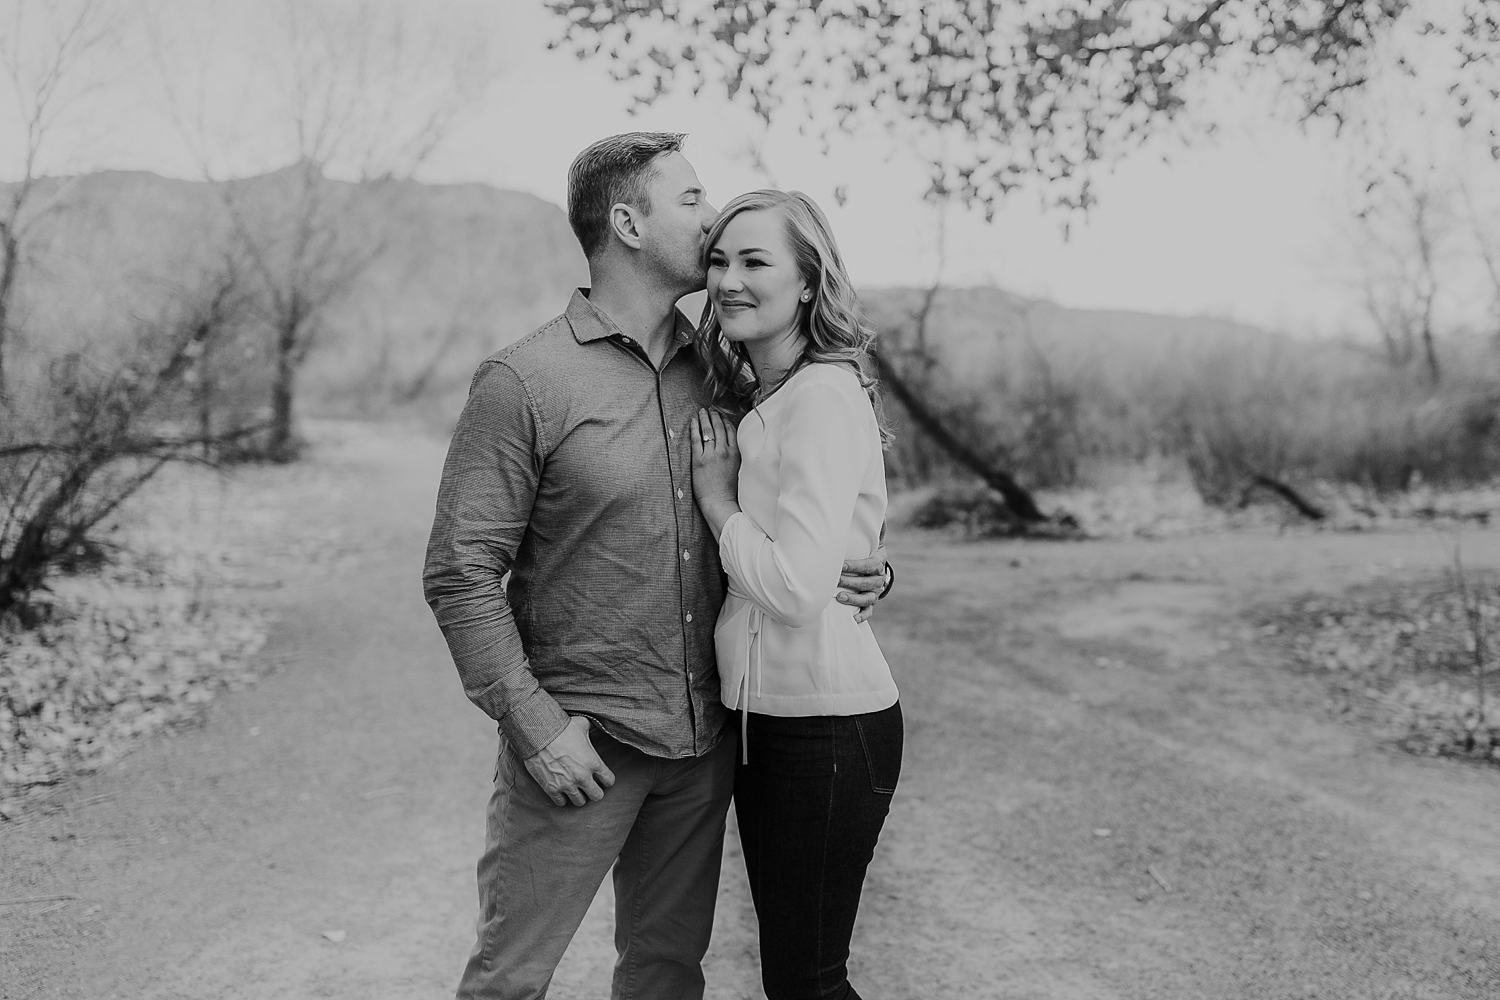 Alicia+lucia+photography+-+albuquerque+wedding+photographer+-+santa+fe+wedding+photography+-+new+mexico+wedding+photographer+-+new+mexico+engagement+-+albuquerque+engagement+-+spring+new+mexico+engagement+-+bosque+engagement_0003.jpg